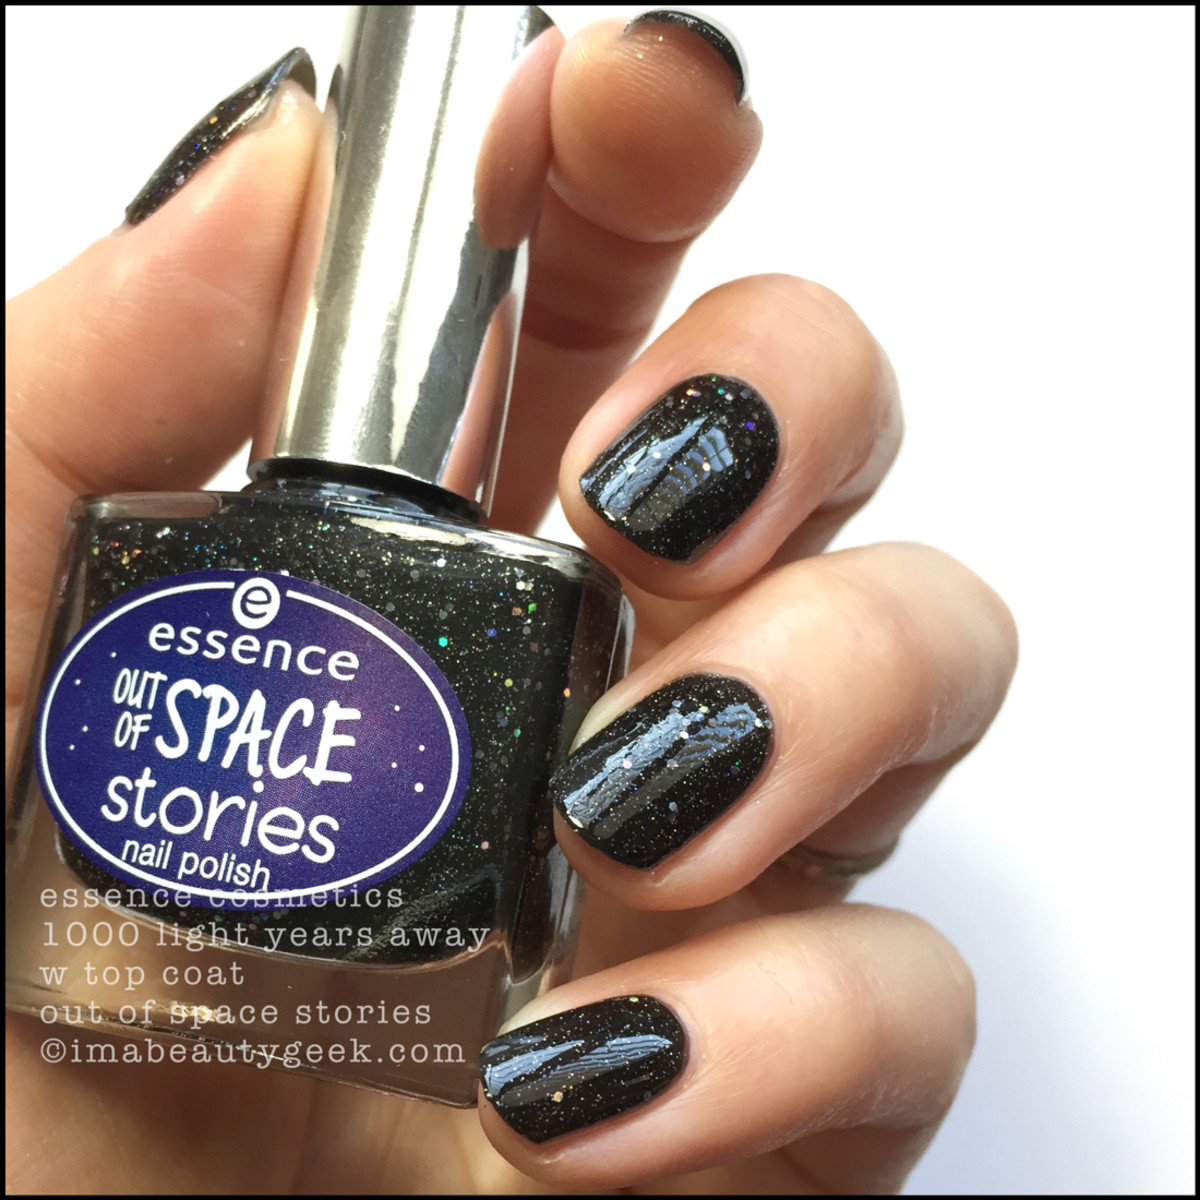 Essence 1000 Light Years Away Nail Polish Swatches 2